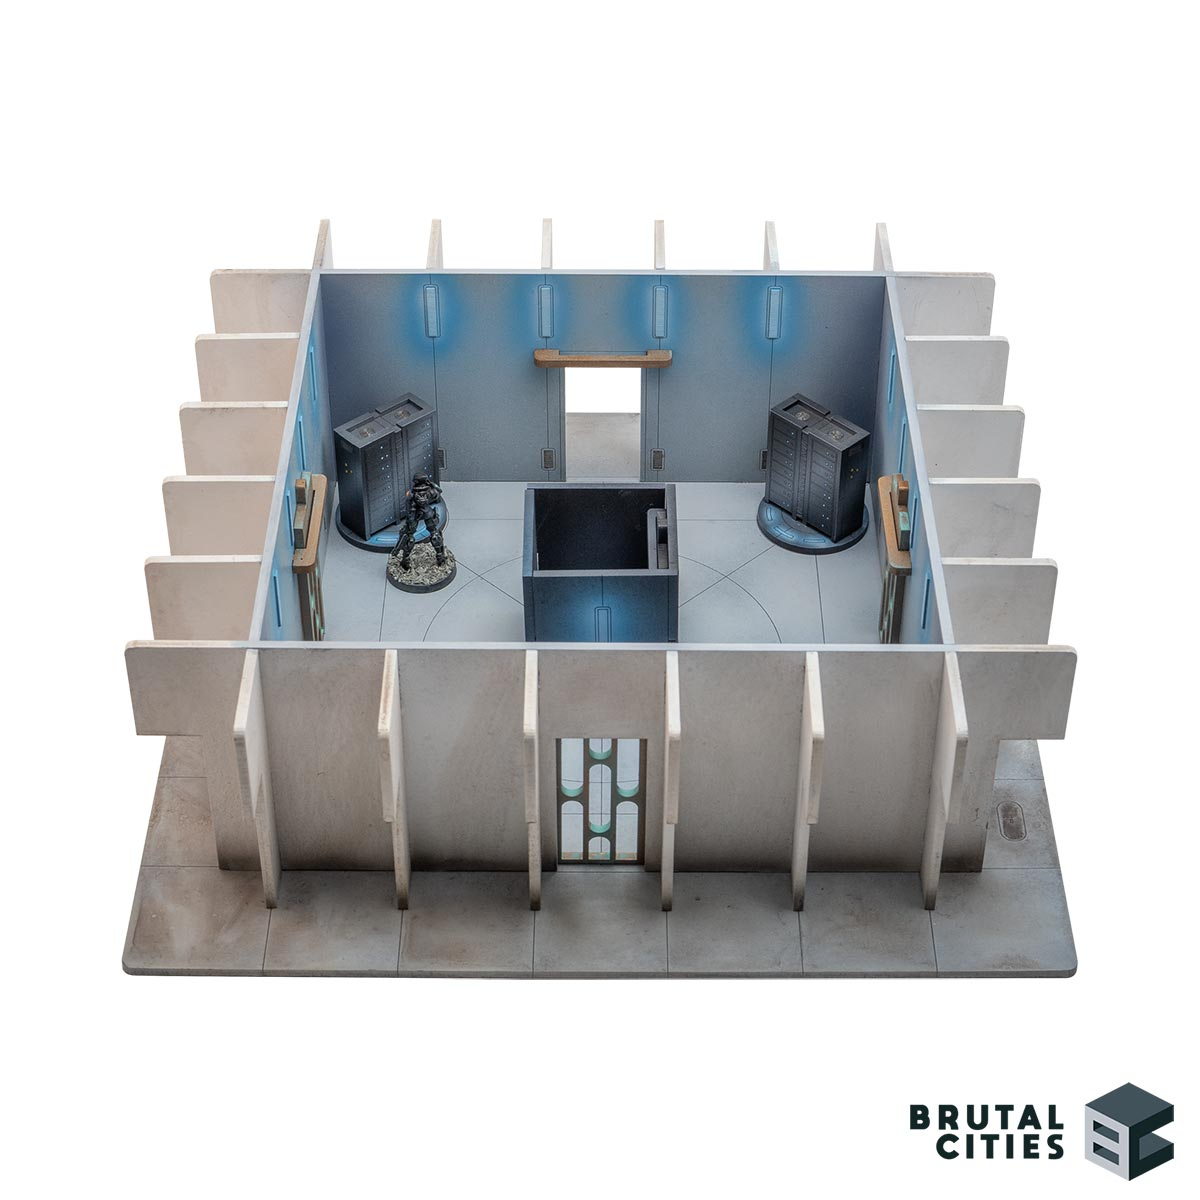 Interior objective room with four cyberpunk objectives